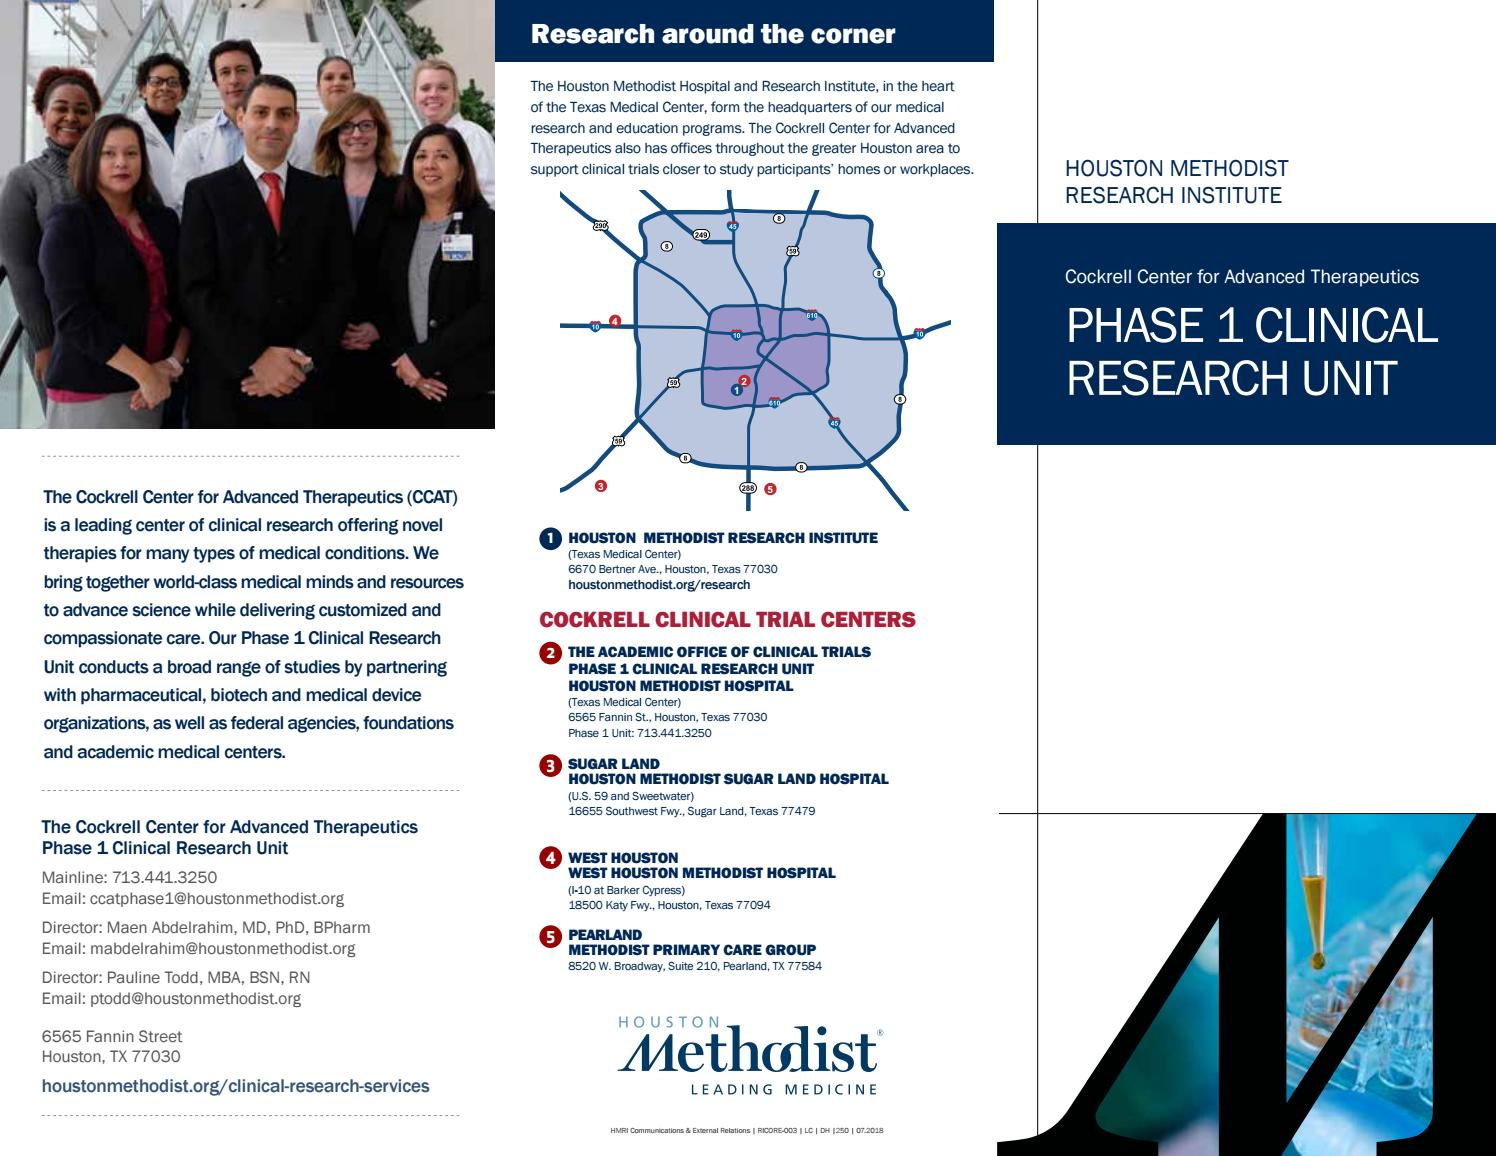 Phase I Clinical Research Unit by Houston Methodist